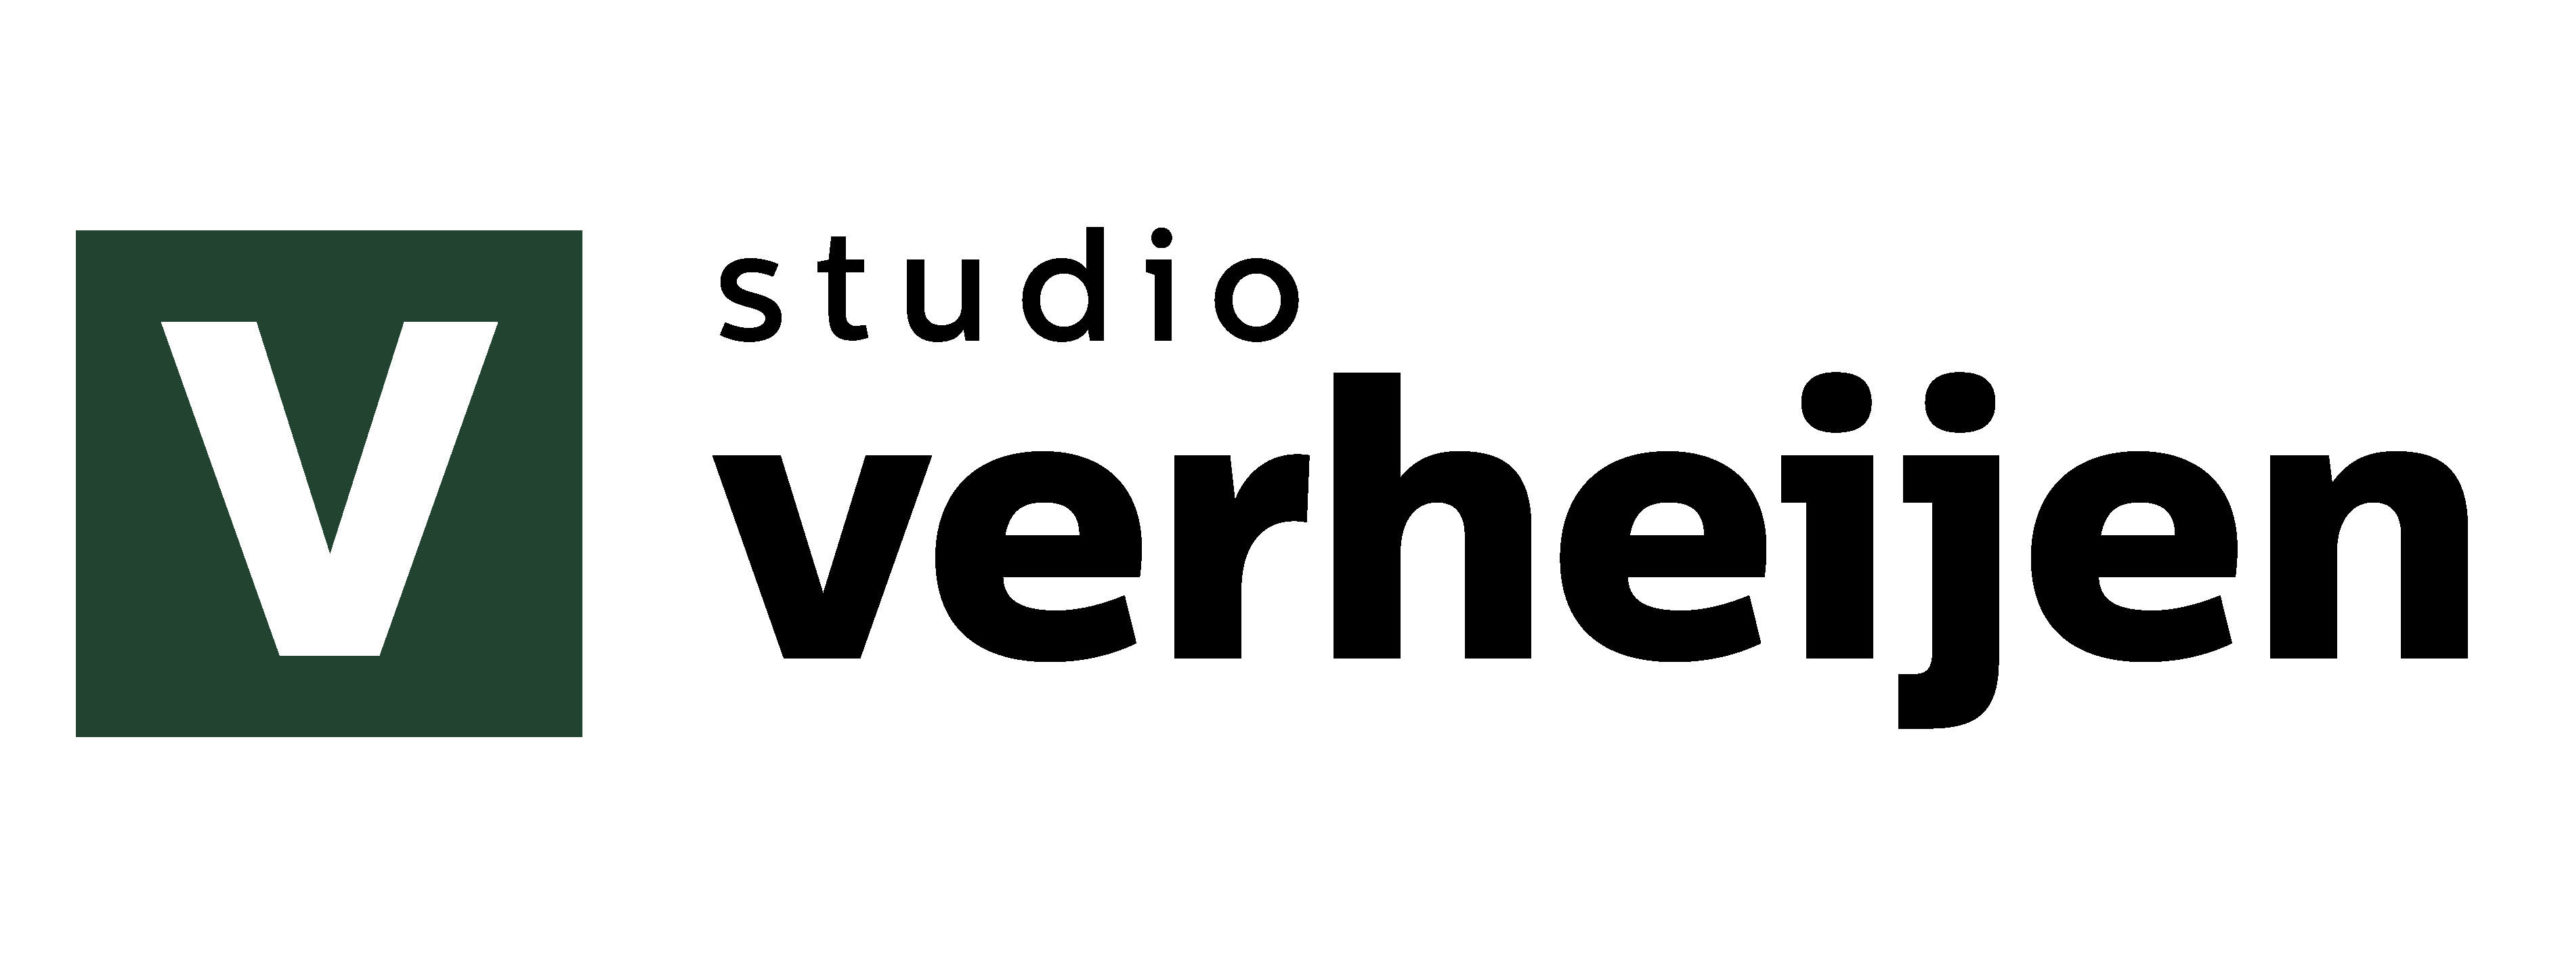 logo-Verheijen-scaled